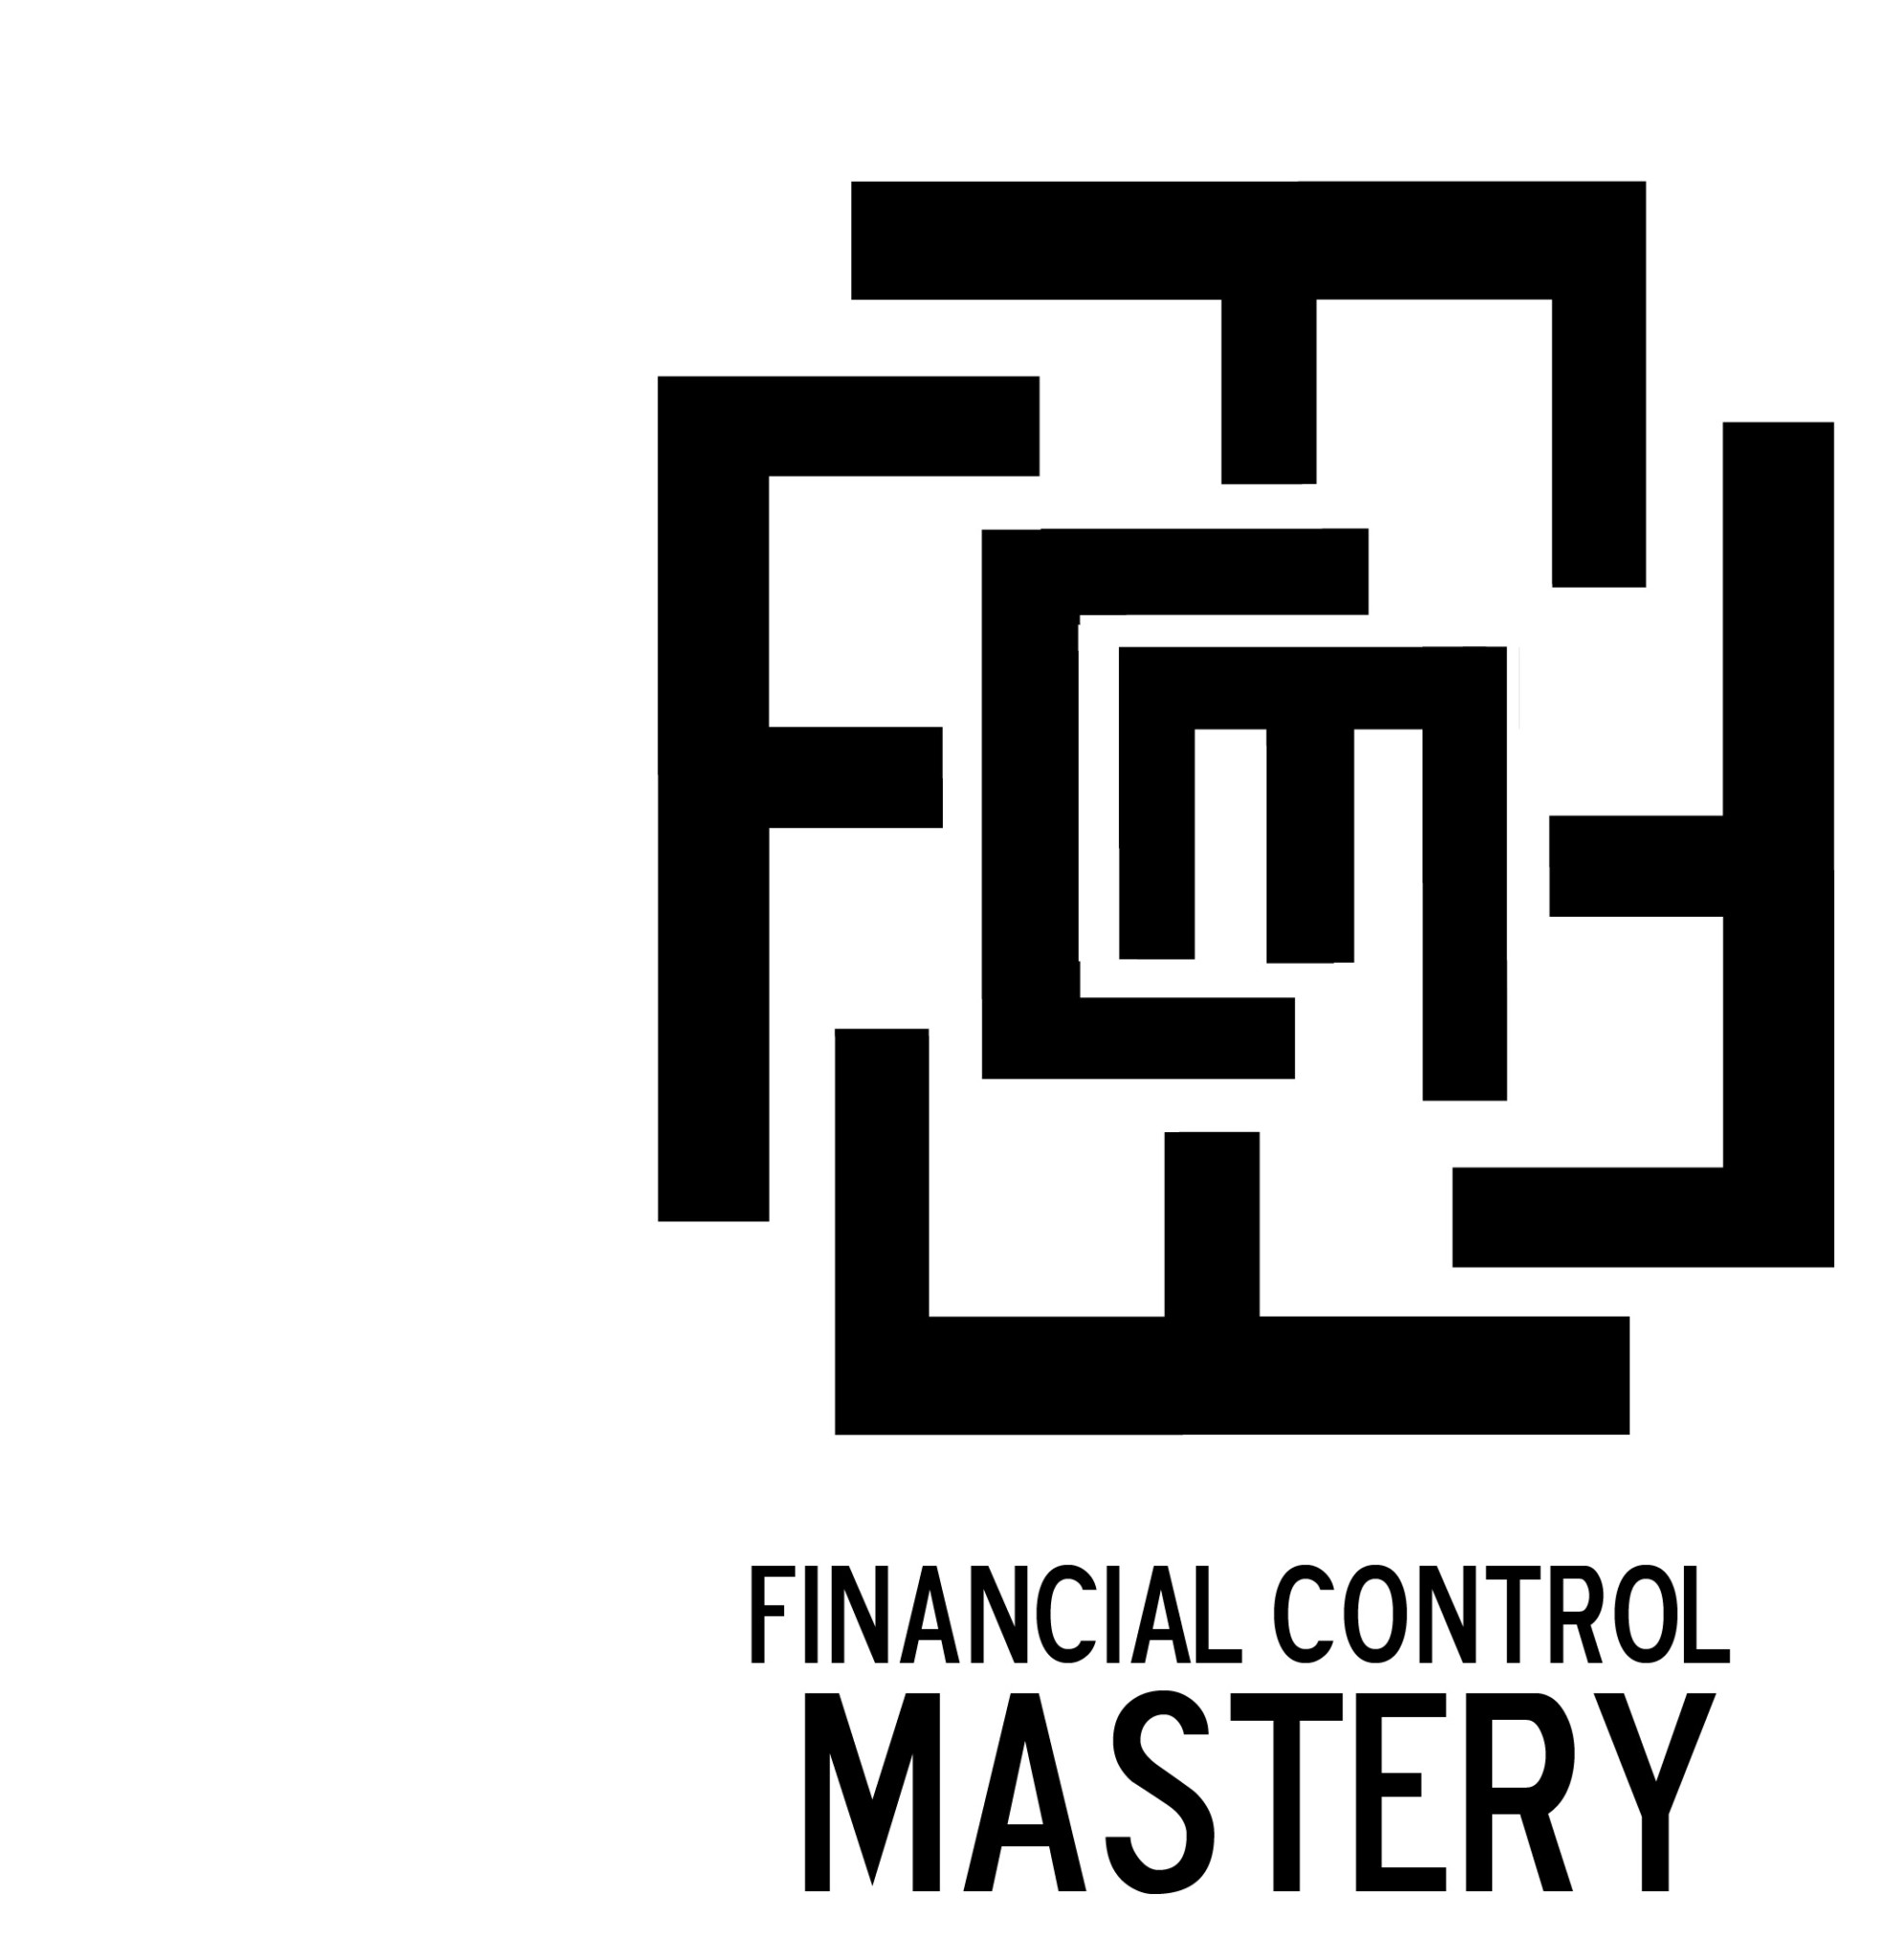 financial control mastery logo with title